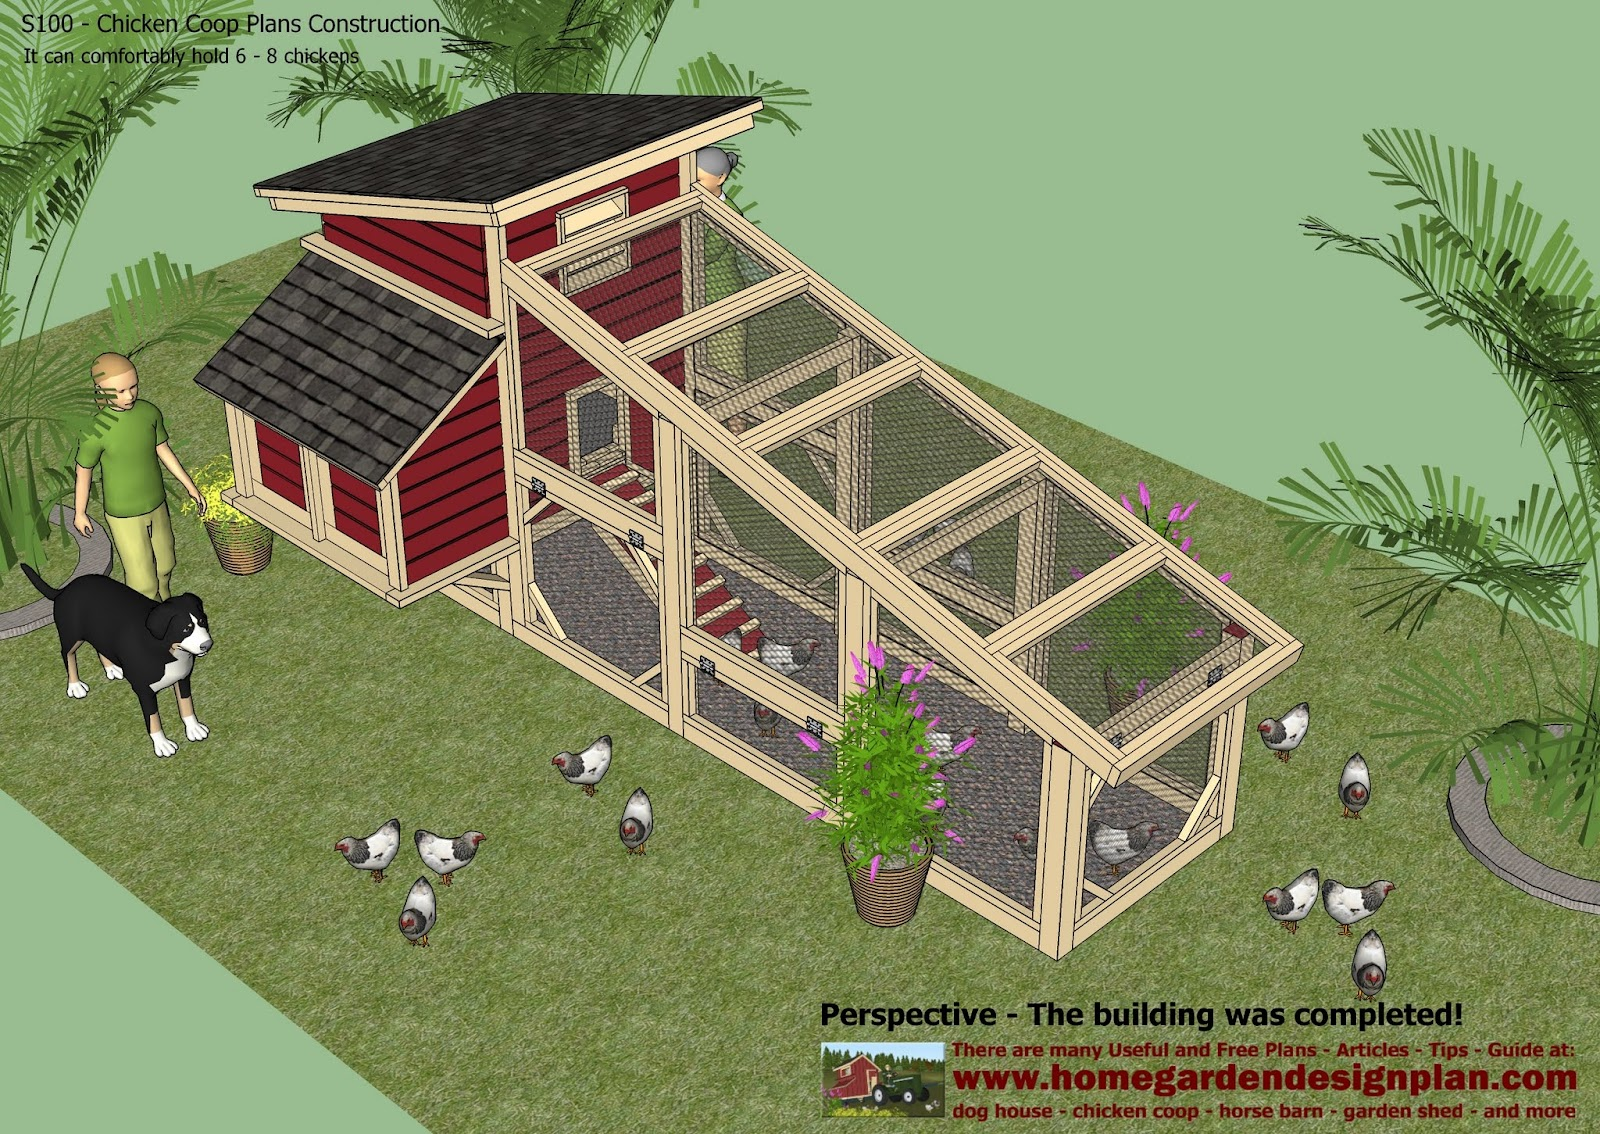 Home garden plans s100 chicken coop plans construction for Plans for a chicken coop for 12 chickens